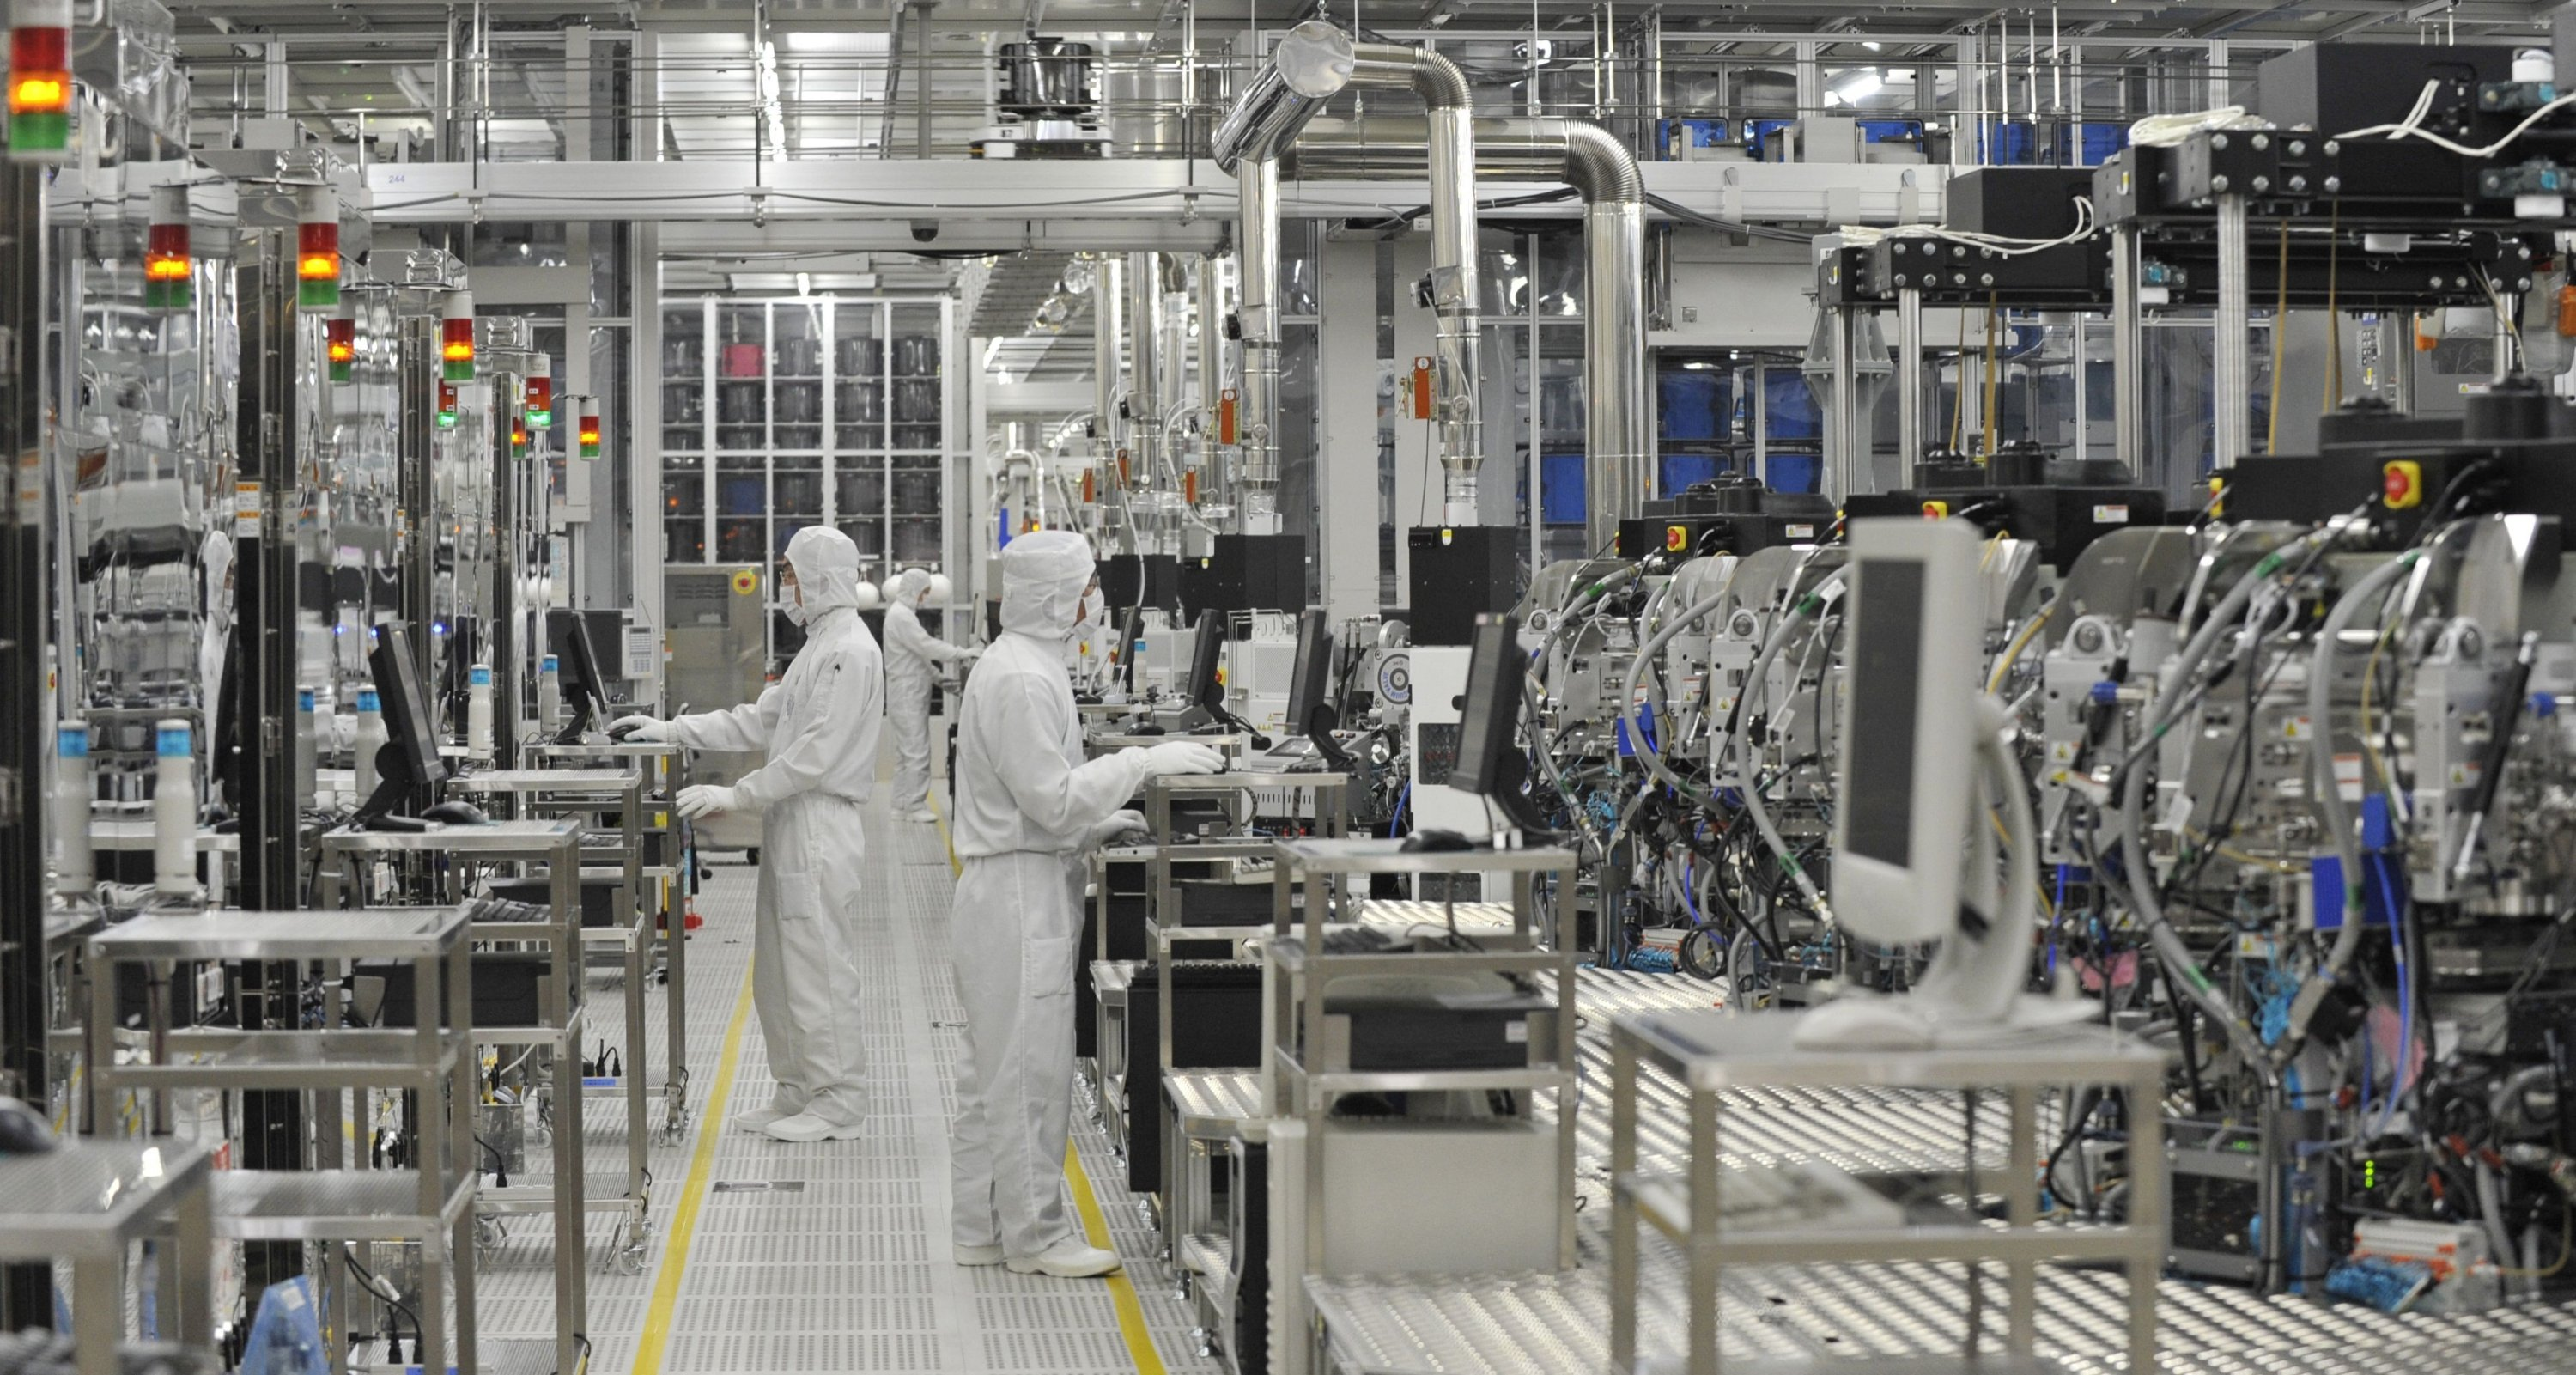 In this file photo employees of microprocessor maker Renesas Electronics work at the company's Naka wafer fabrication factory in Hitachinaka, Ibaraki prefecture, northeastern Japan, June 10, 2011.(AFP Photo)